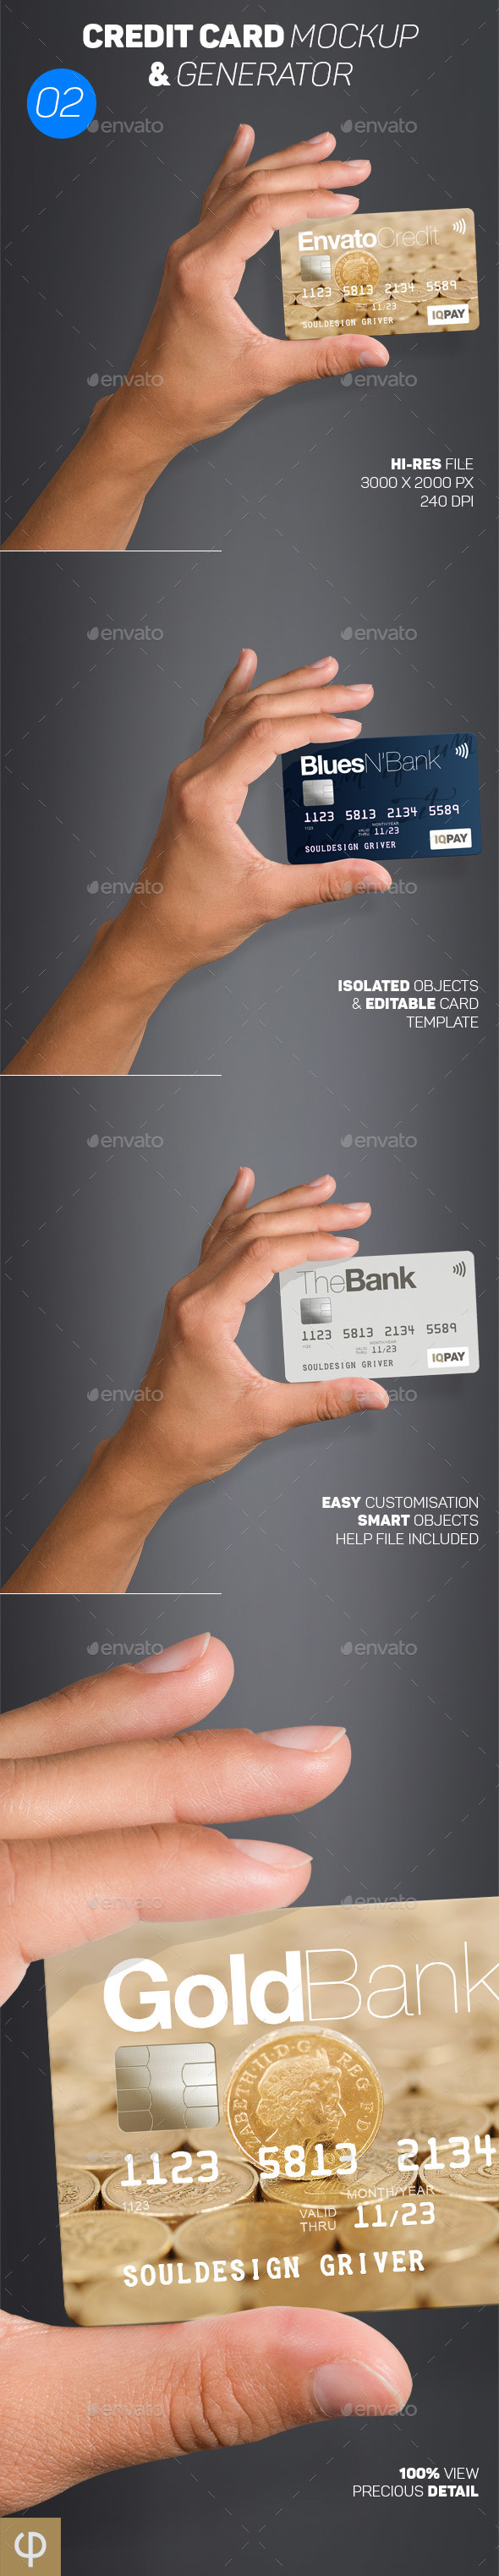 GraphicRiver Card Mockup & Generator 02 20673511